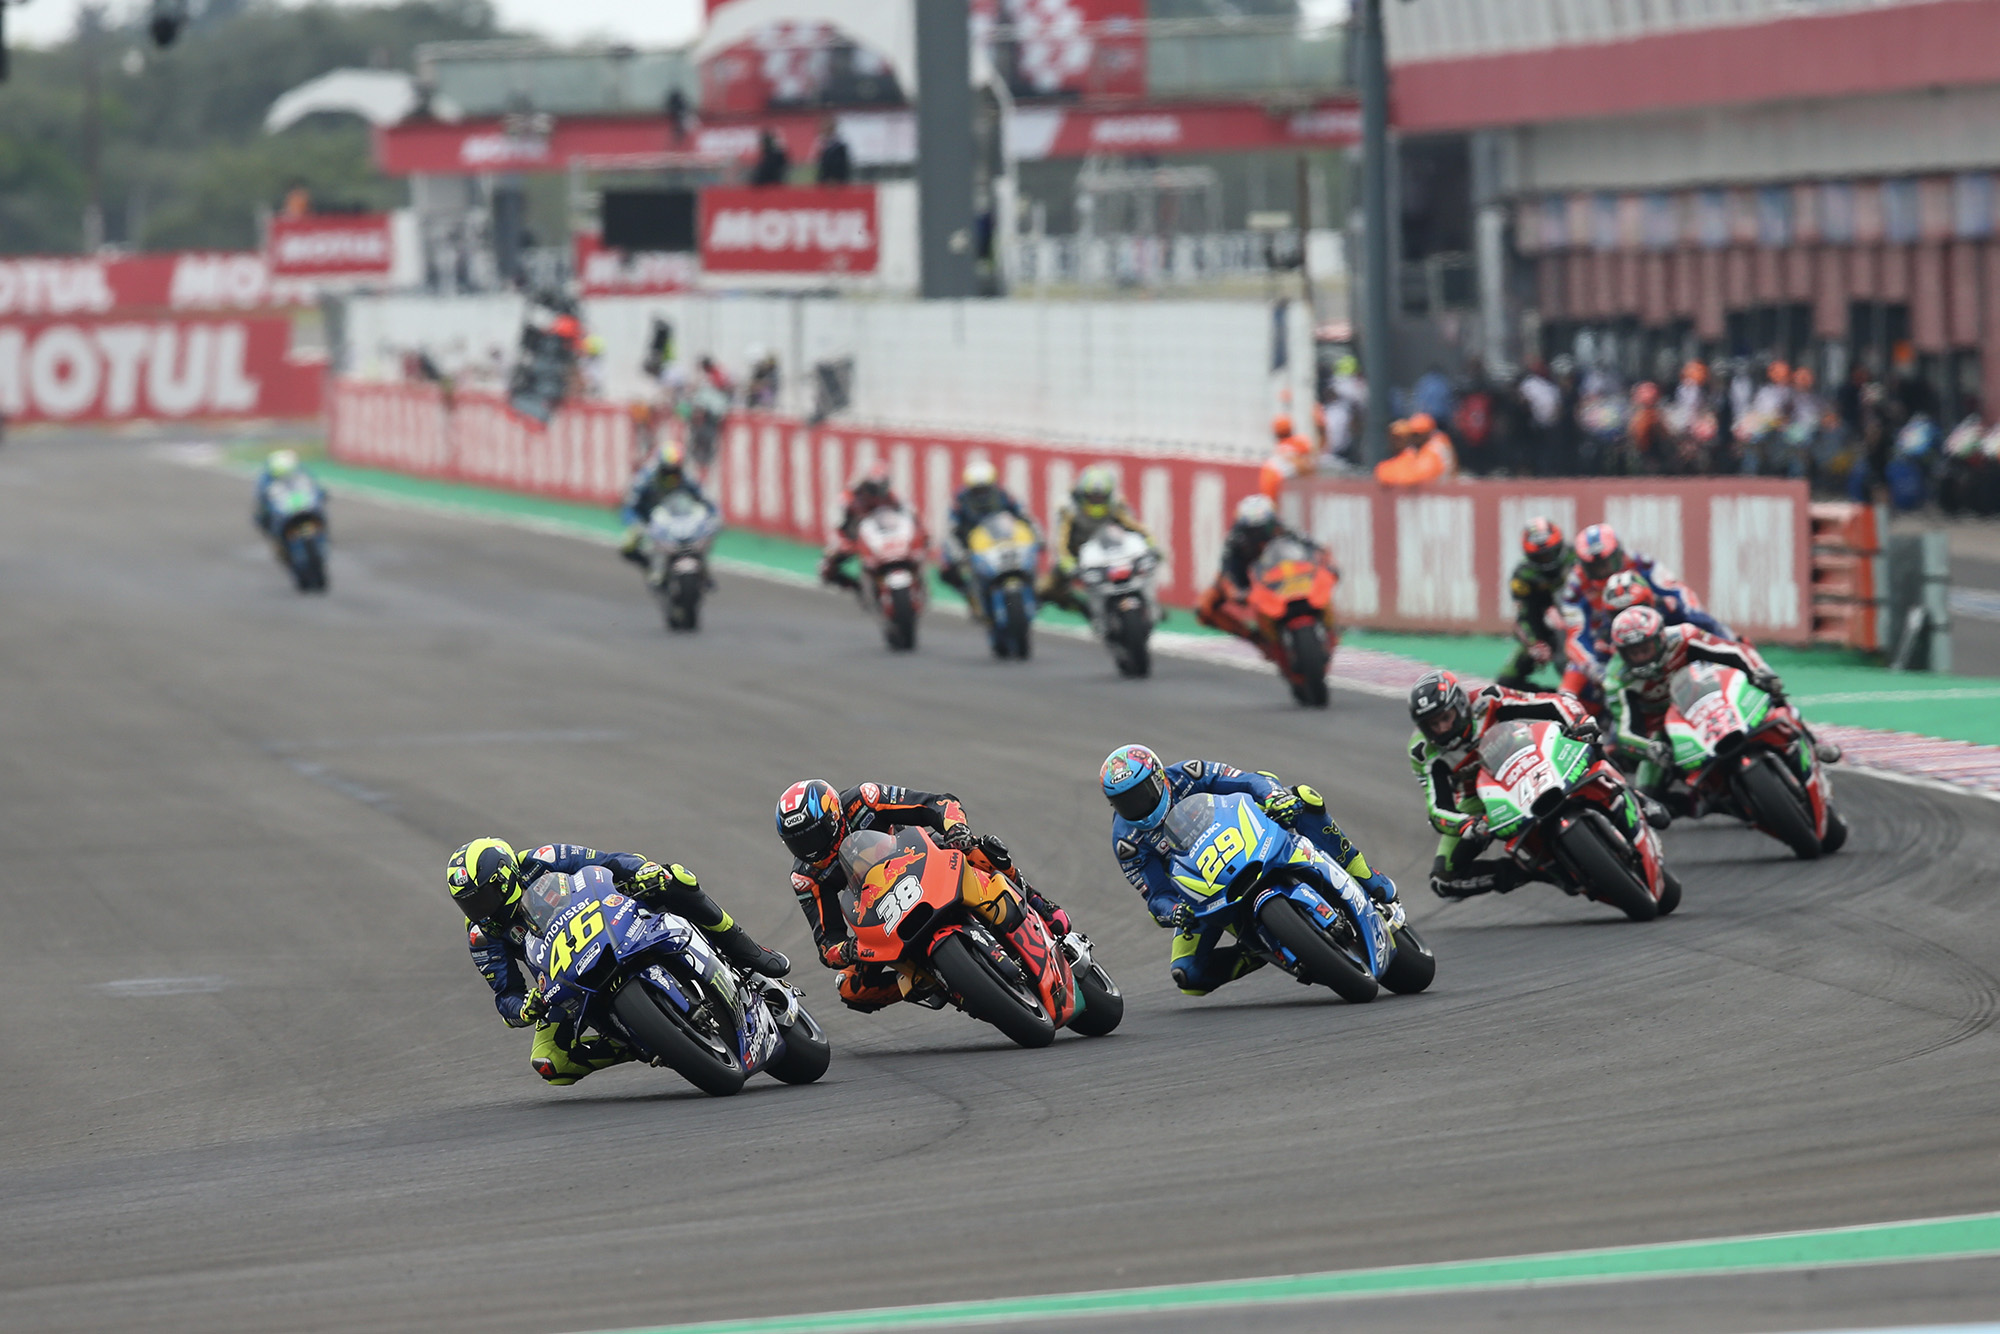 MotoGP season to start in May after Argentina round postponed